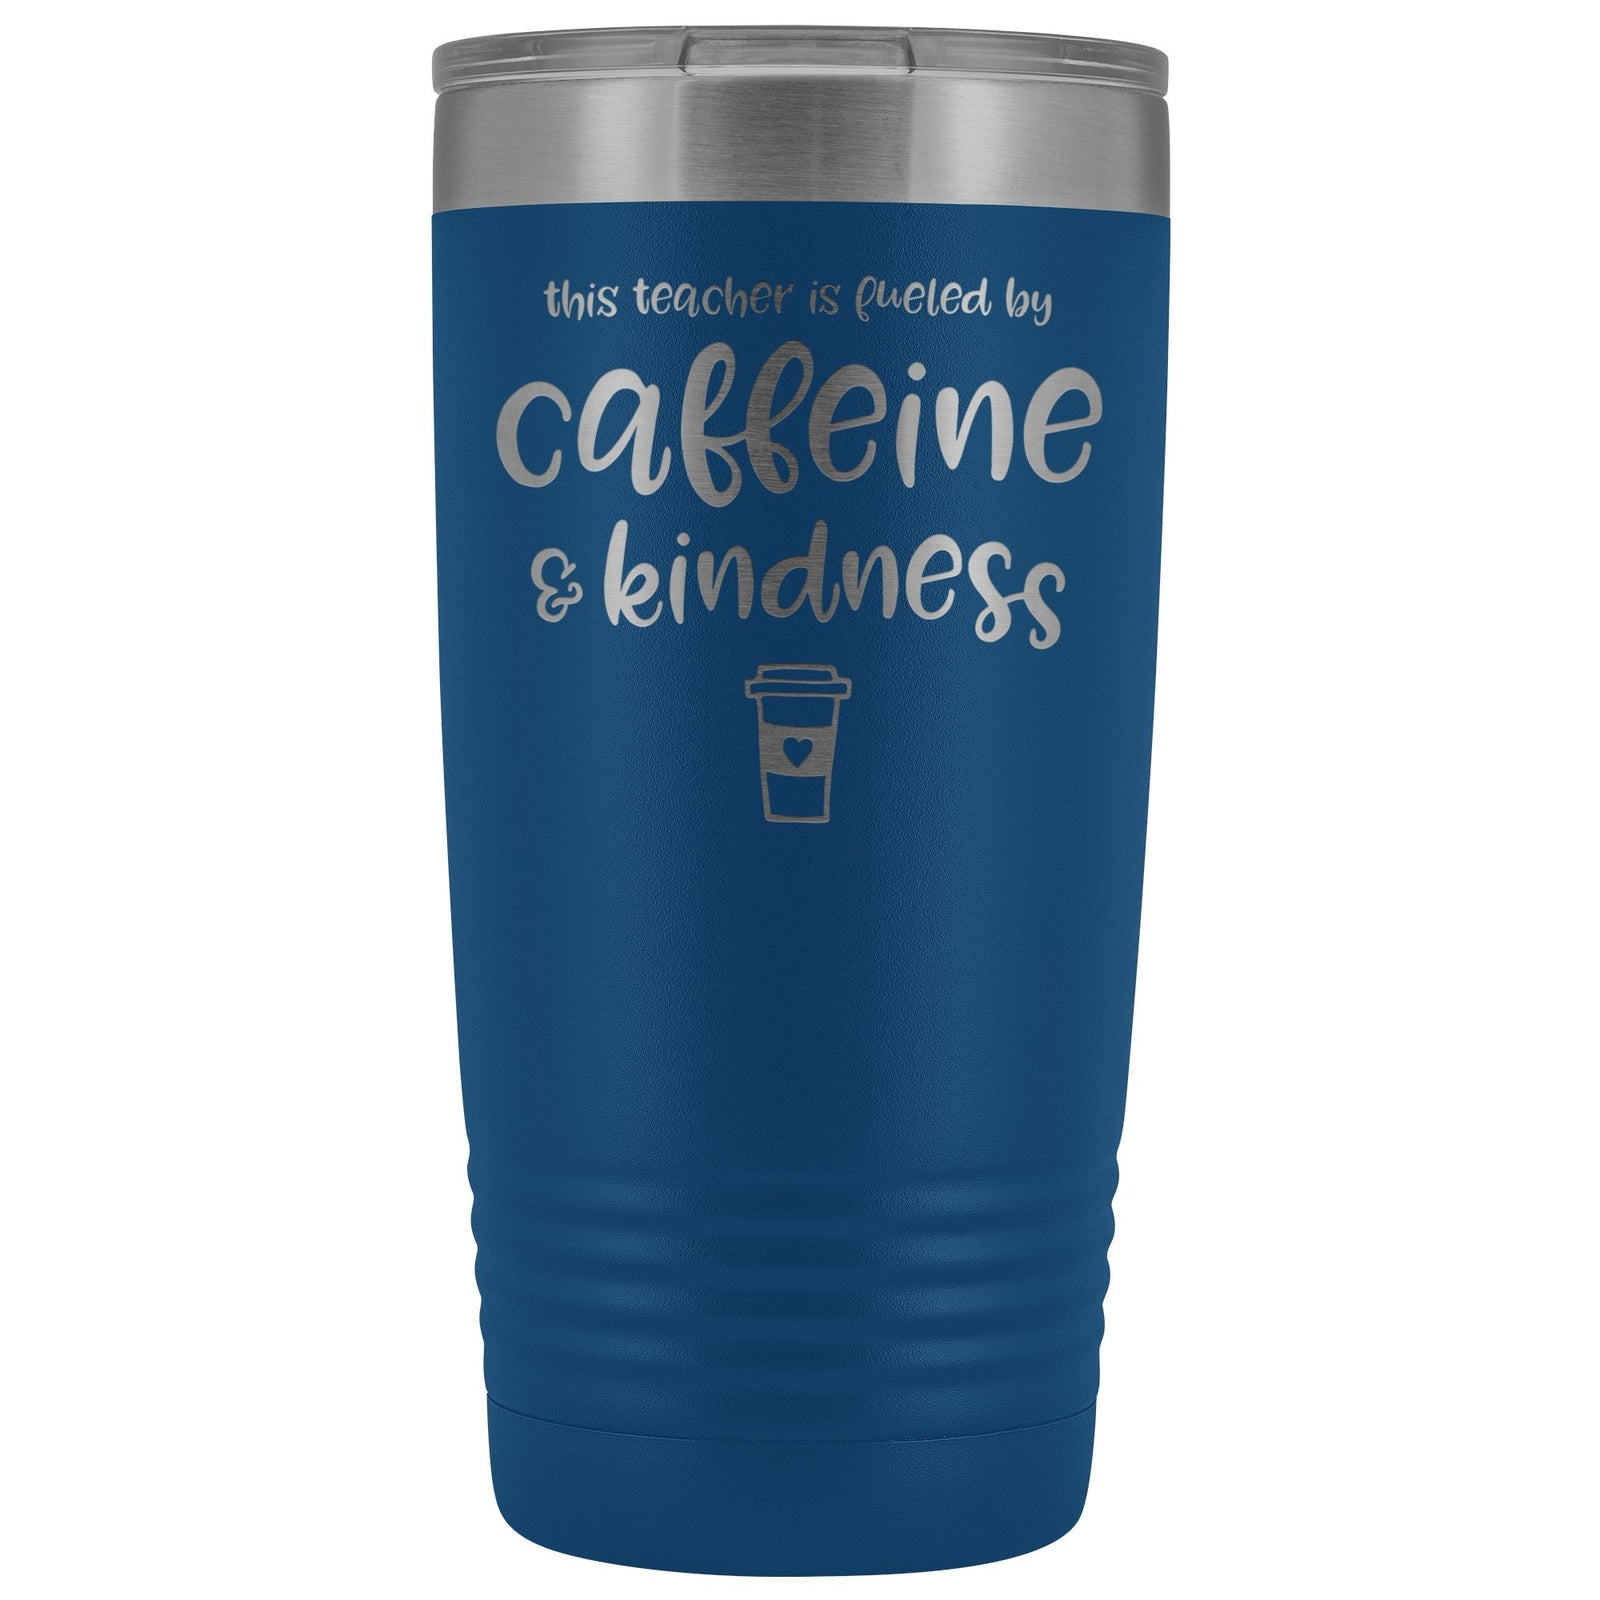 This Teacher is Fueled by Caffeine & Kindness 20oz Insulated Coffee Tumbler